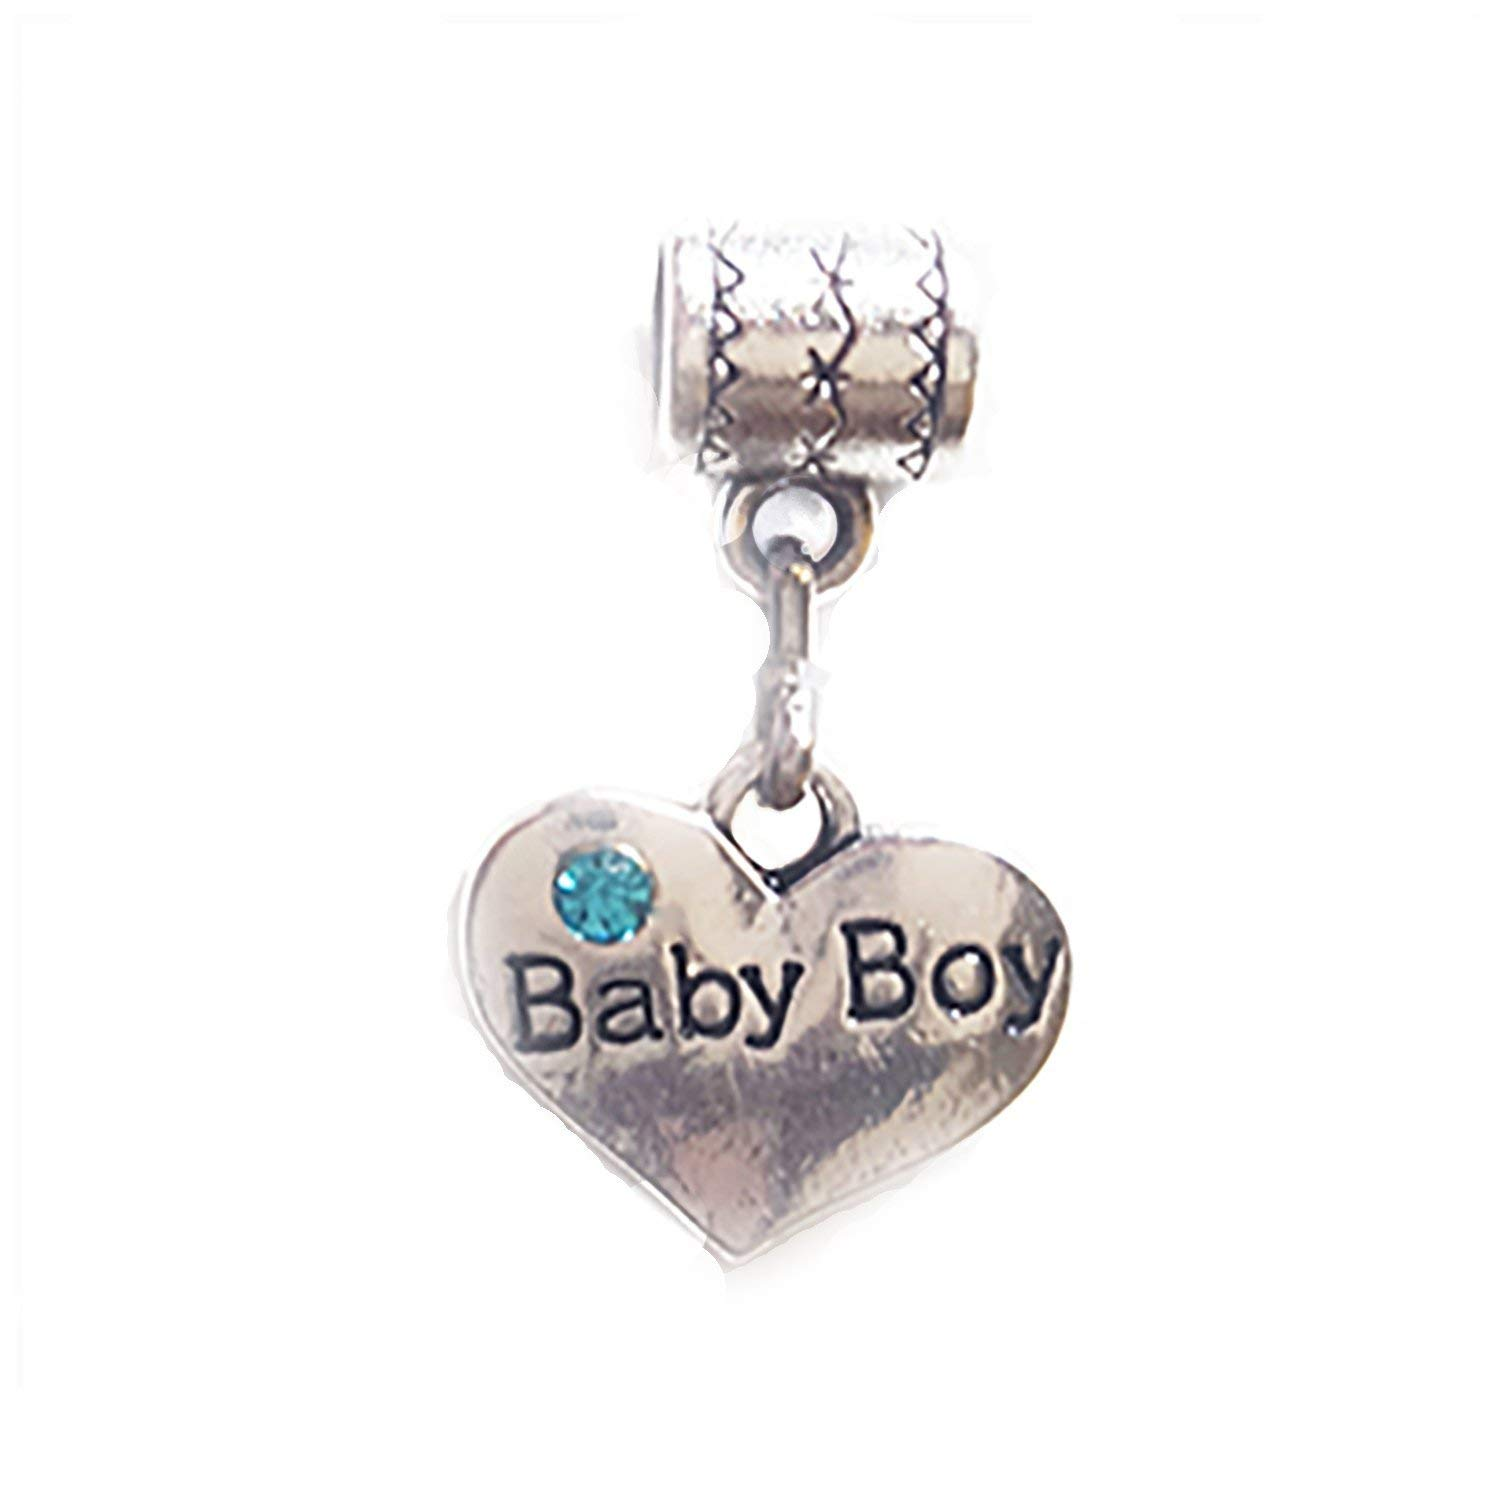 """Baby Boy"" Tibetan Silver 2-sided charm by Mossy Cabin for large hole style snake chain charm bracelet with blue crystal. Great addition to a key chain, neck chain, pendant or necklace as well."